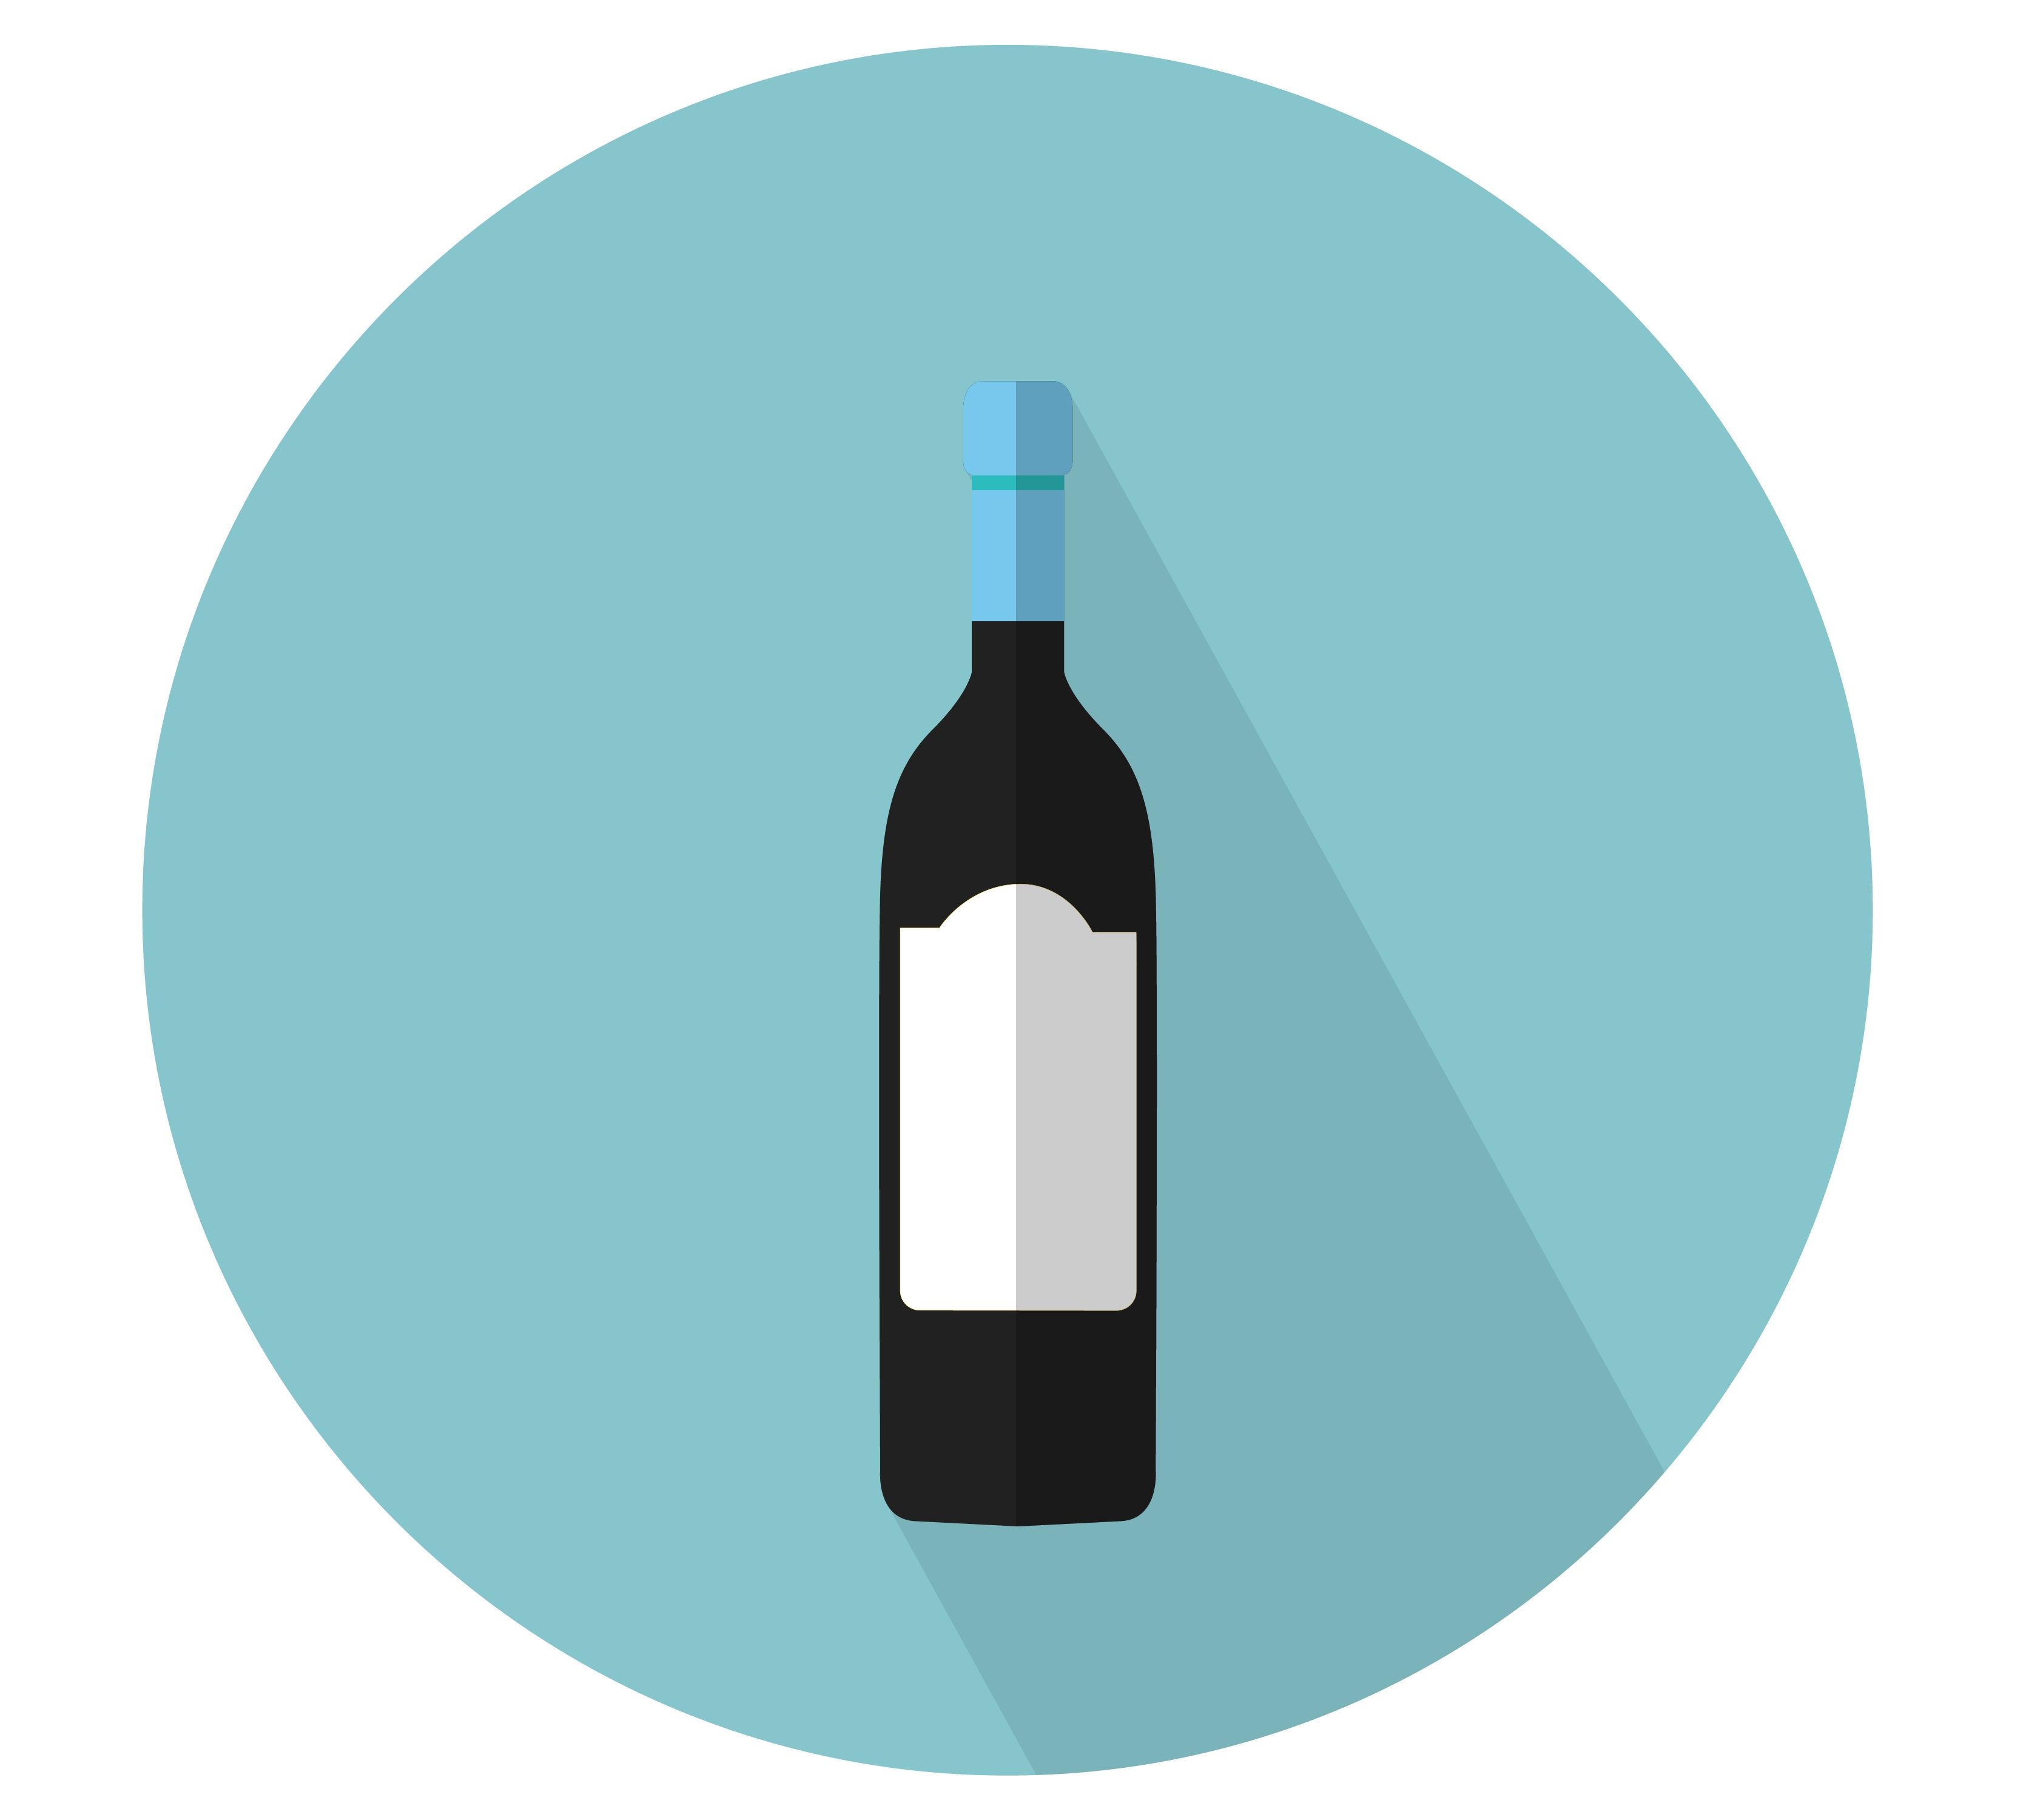 Vector Illustration Of A Red Wine Bottle And Glass Isolated On White Wine Bottle Illustration Red Wine Bottle Red Wine